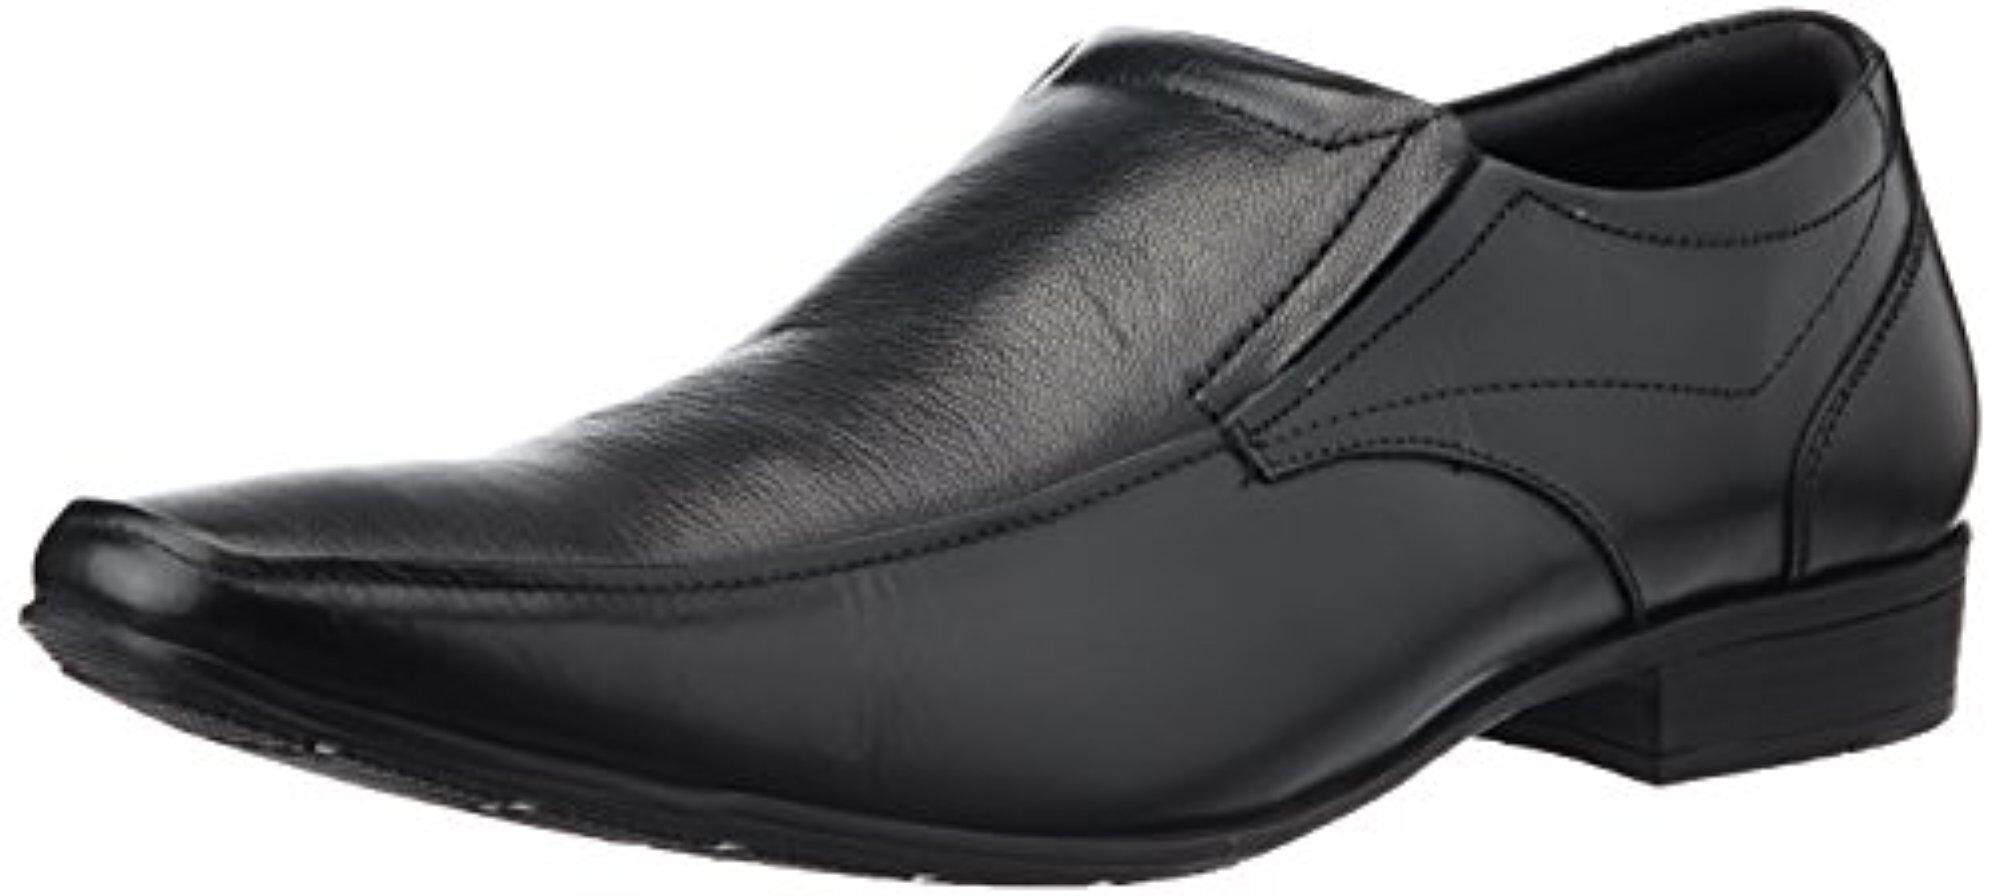 Hush Puppies Pria Bruce Slip On Hitam Sepatu Formal Kulit 10 UK India .